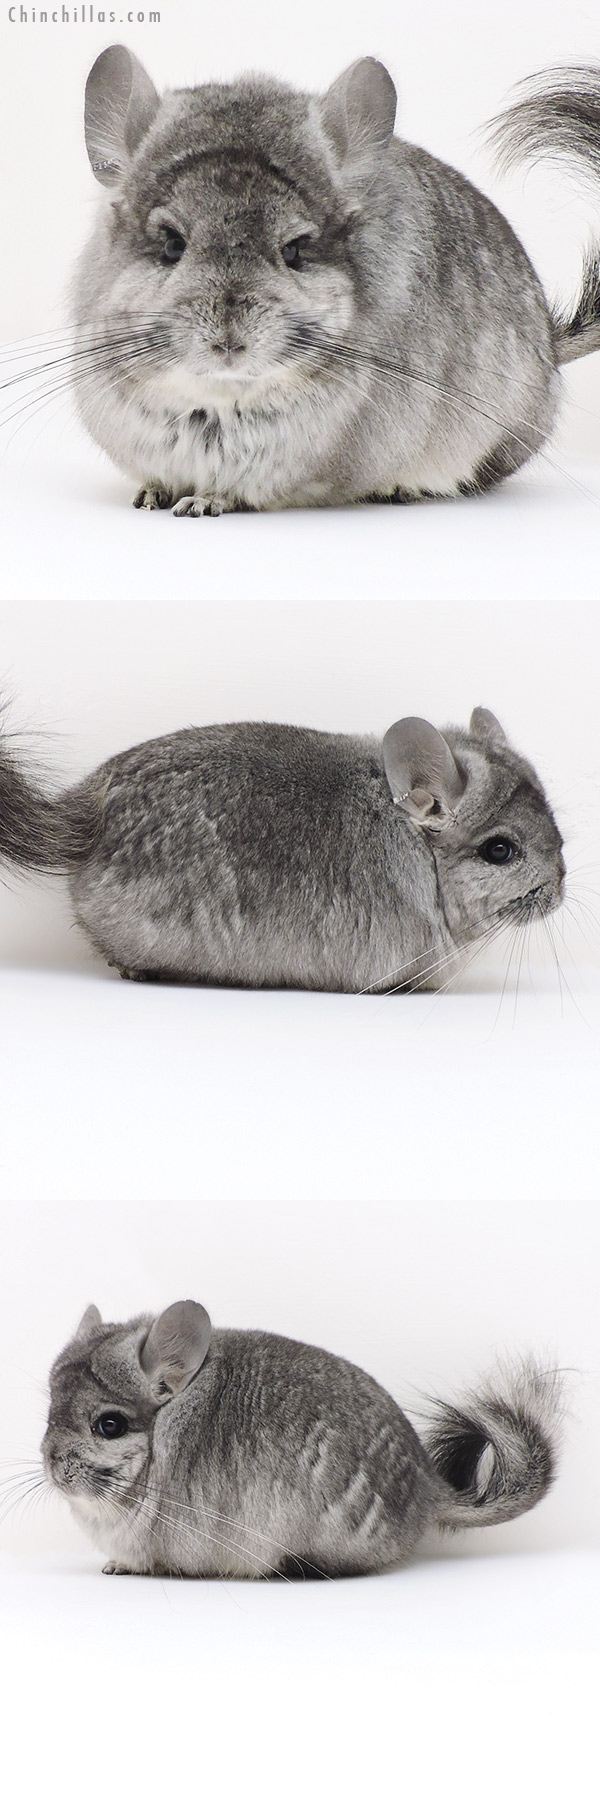 17212 Standard ( Ebony & Locken Carrier ) CCCU Royal Persian Angora Male Chinchilla